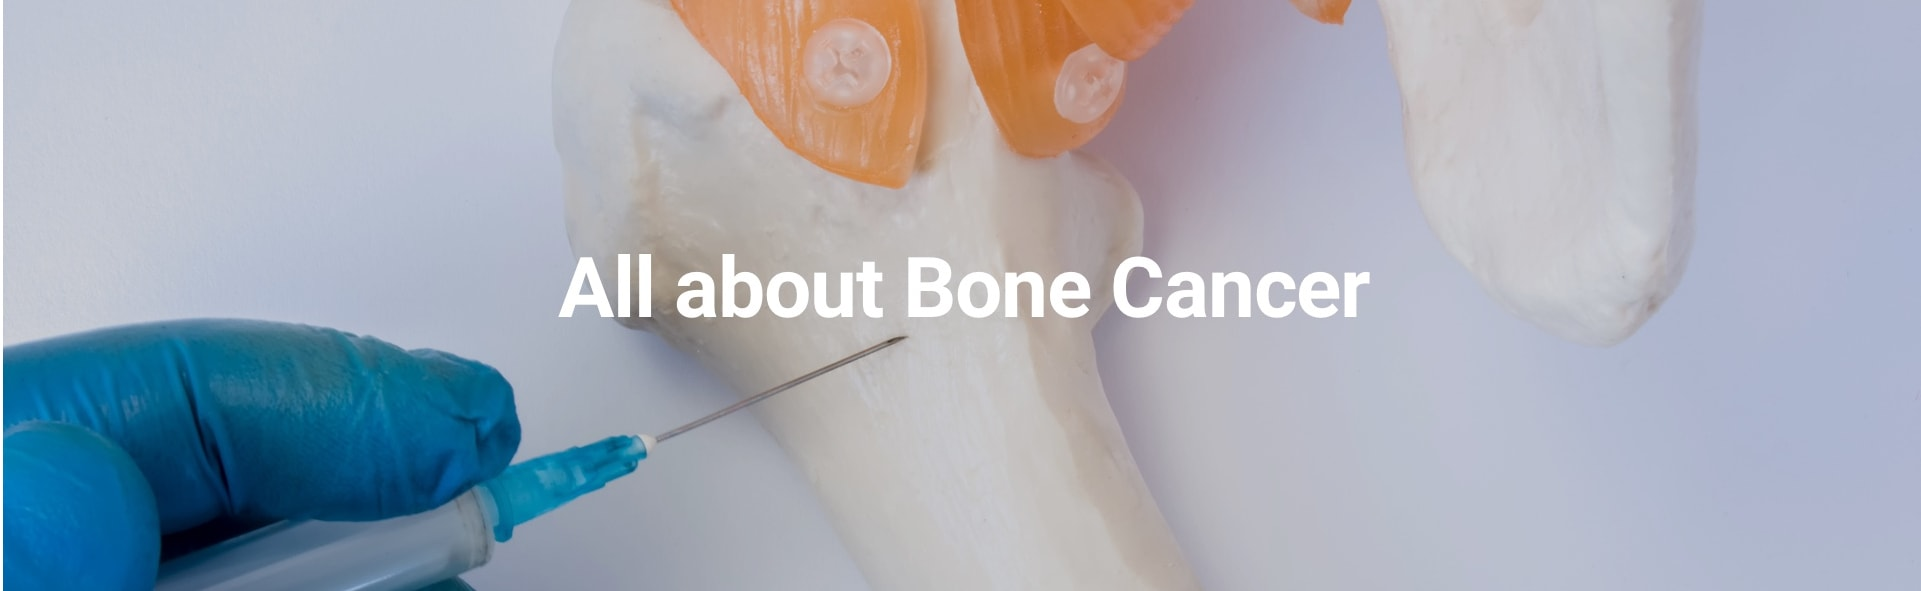 All About Bone Cancer